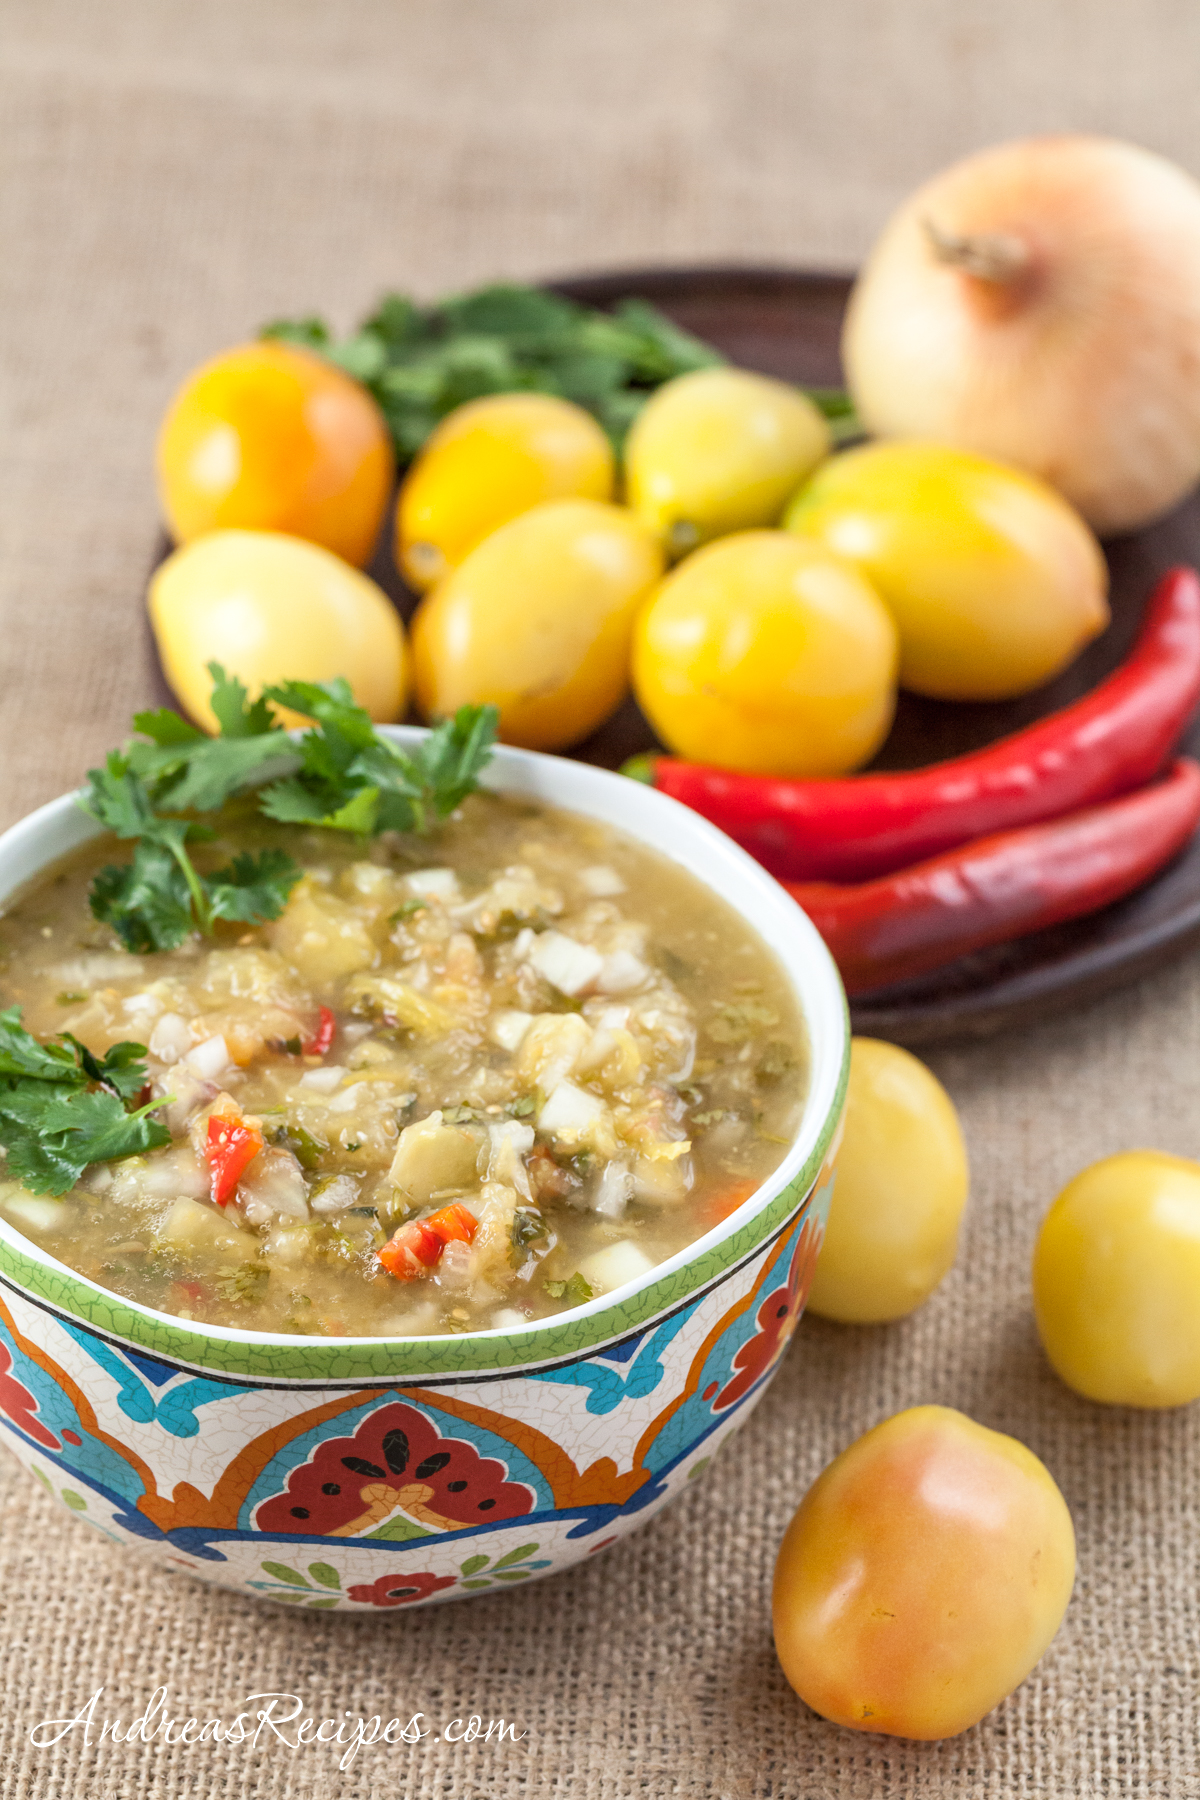 Sweet Yellow Tomato Salsa with Vidalia Onion, Red Chilies, Lime, and Cilantro - Andrea Meyers